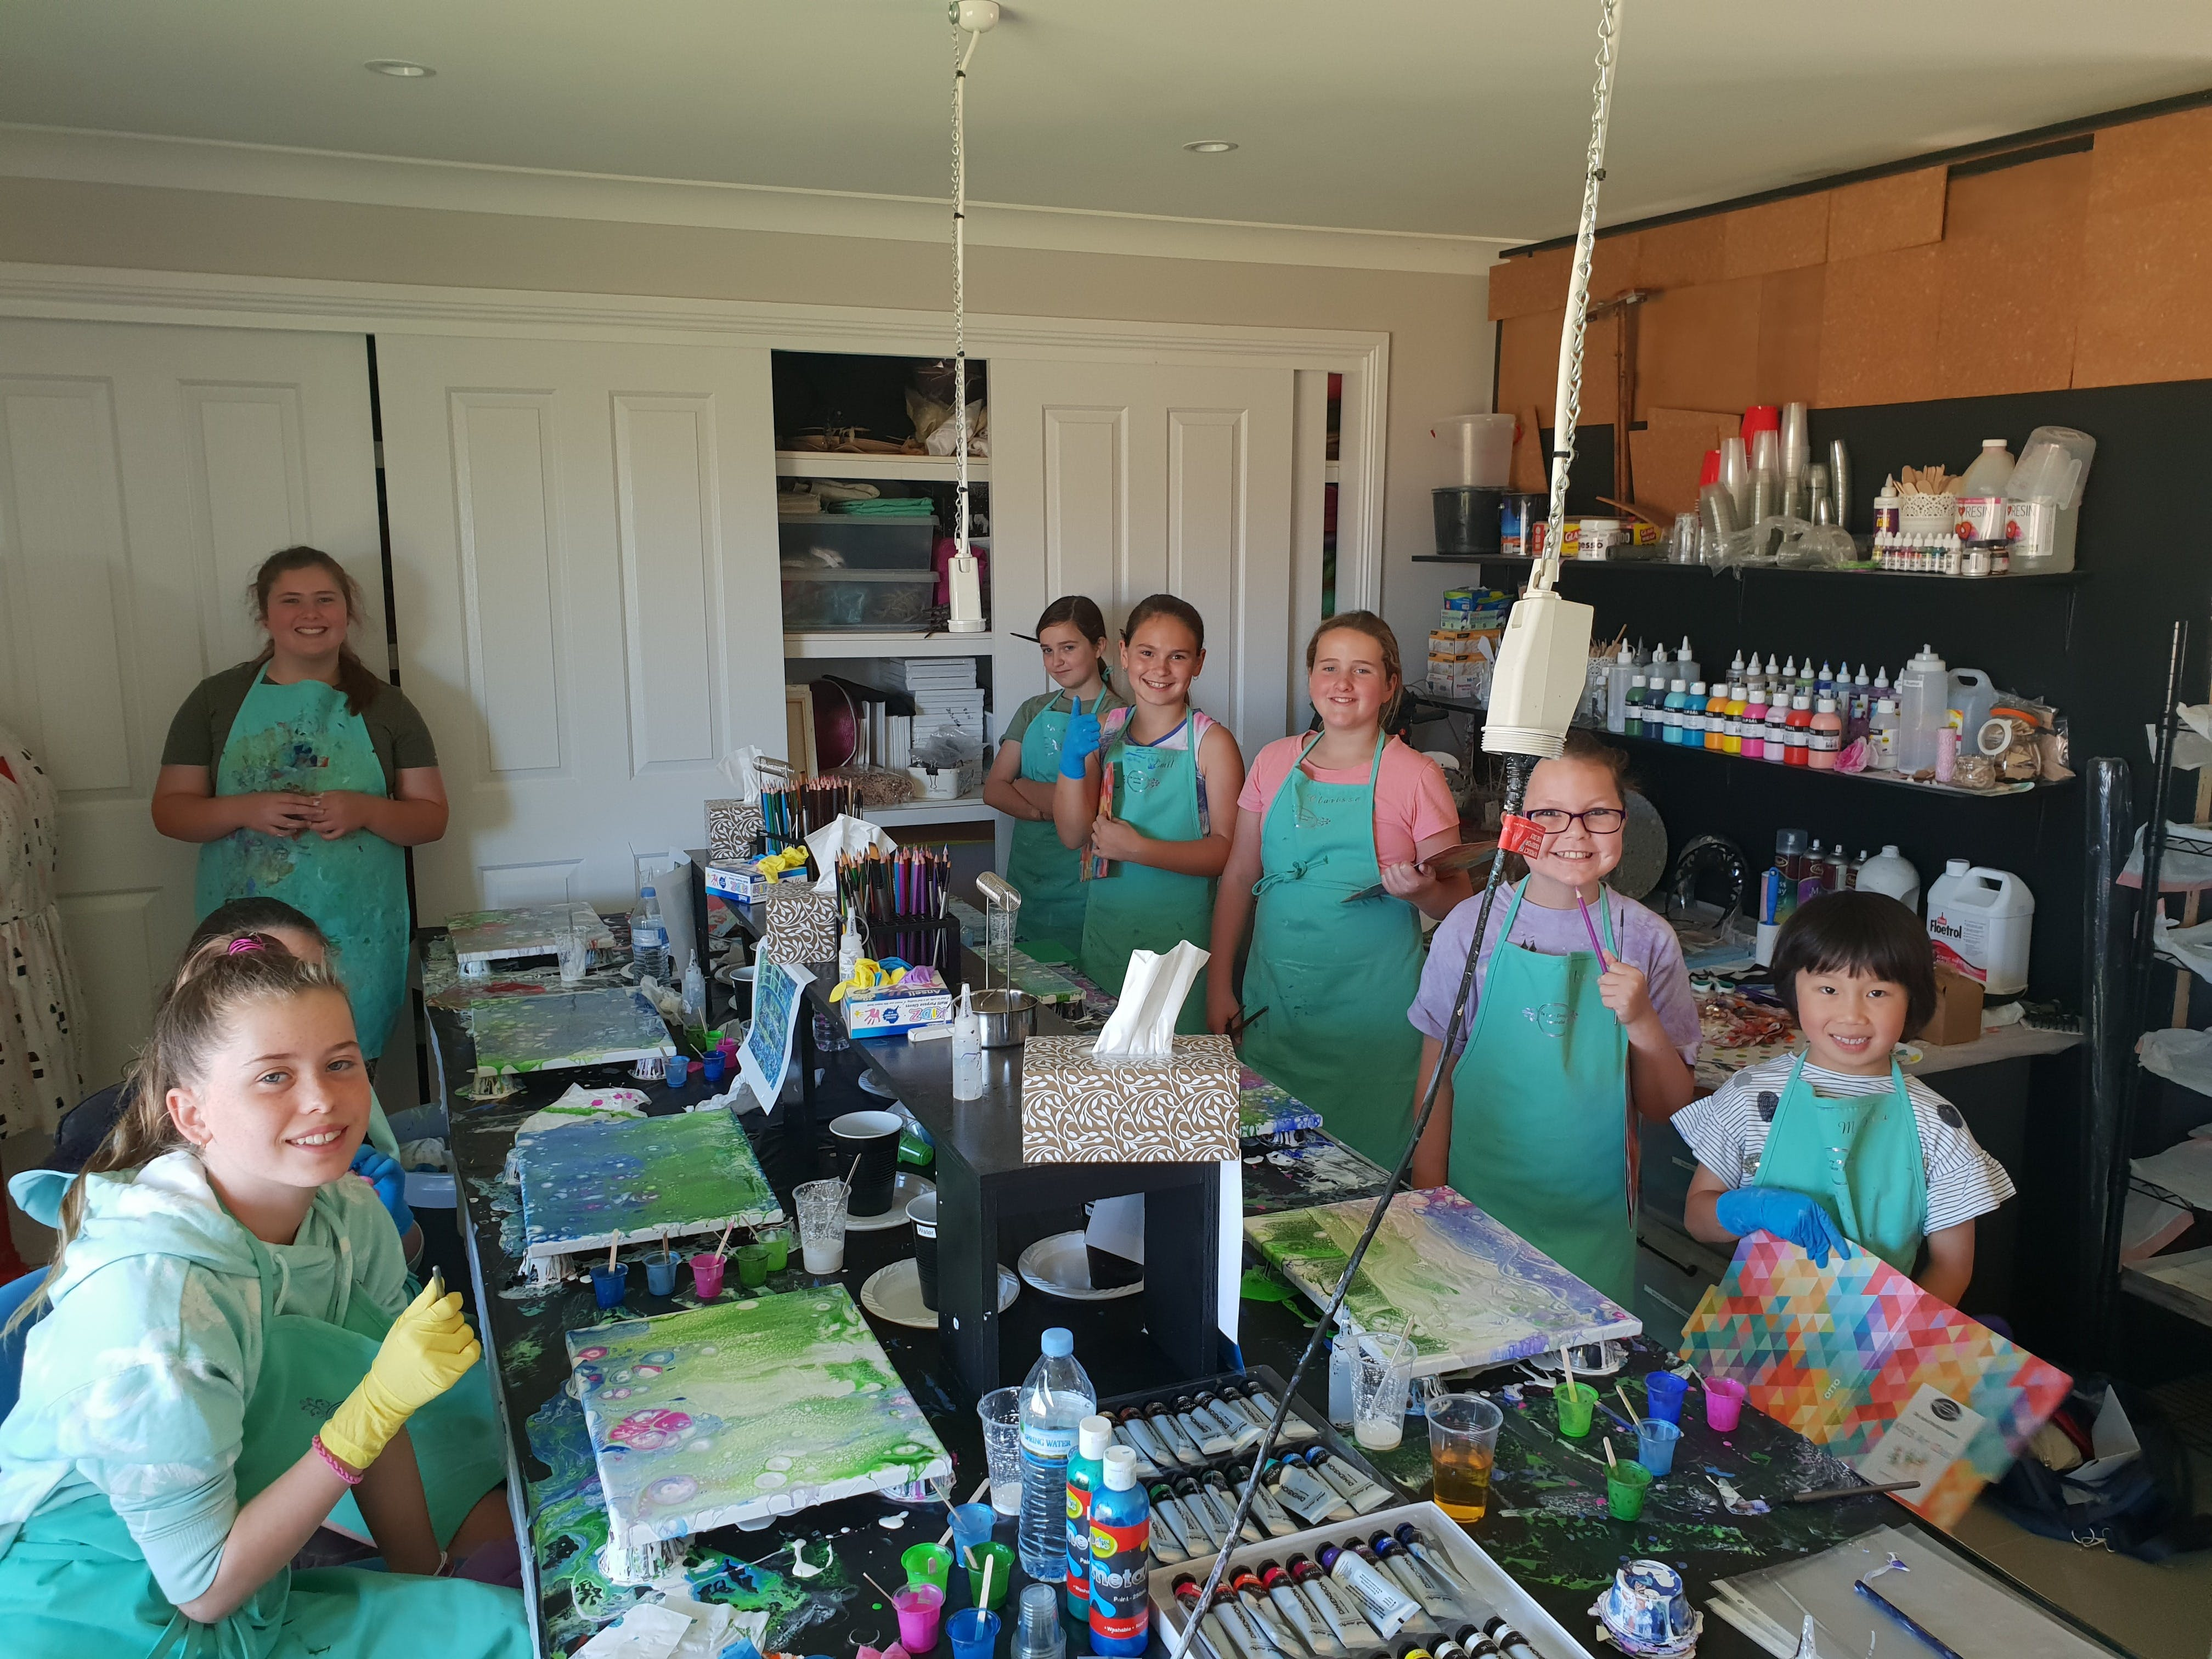 School holidays - Kids art class - Painting - Townsville Tourism